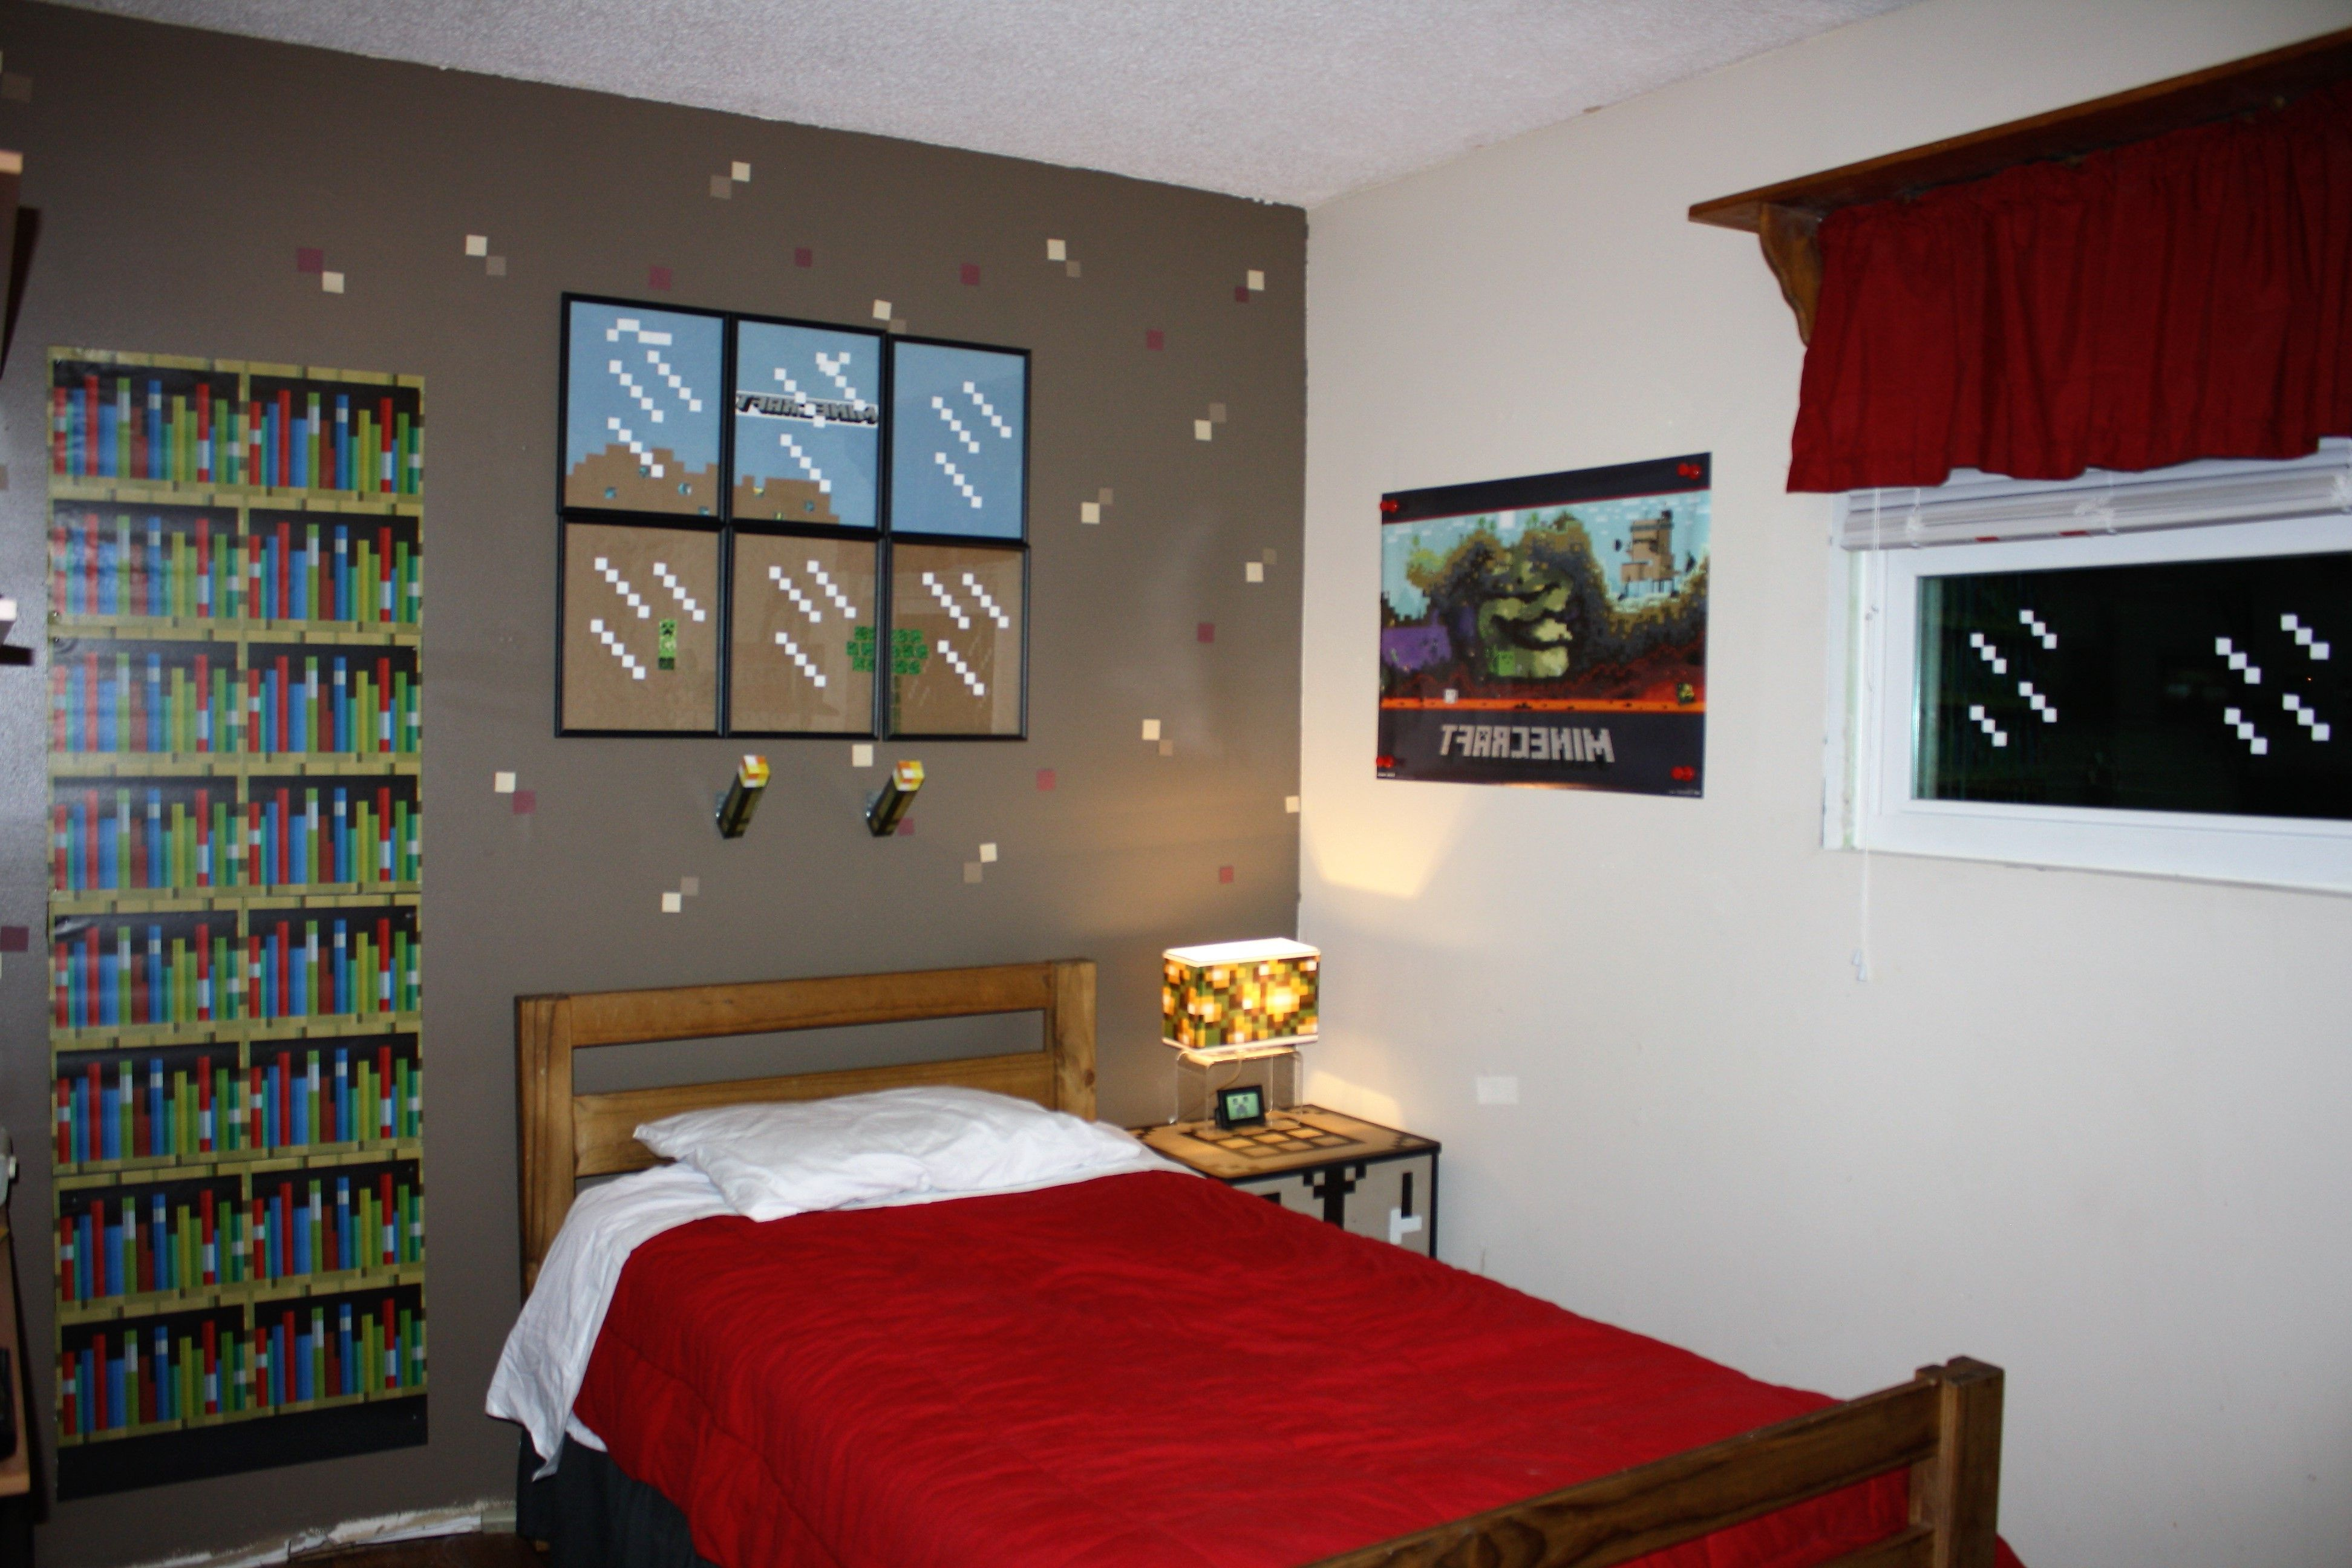 Minecraft Design Ideas Pictures Remodel And Decor Minecraft Bedroom Decor Minecraft Bedroom Minecraft Room Decor